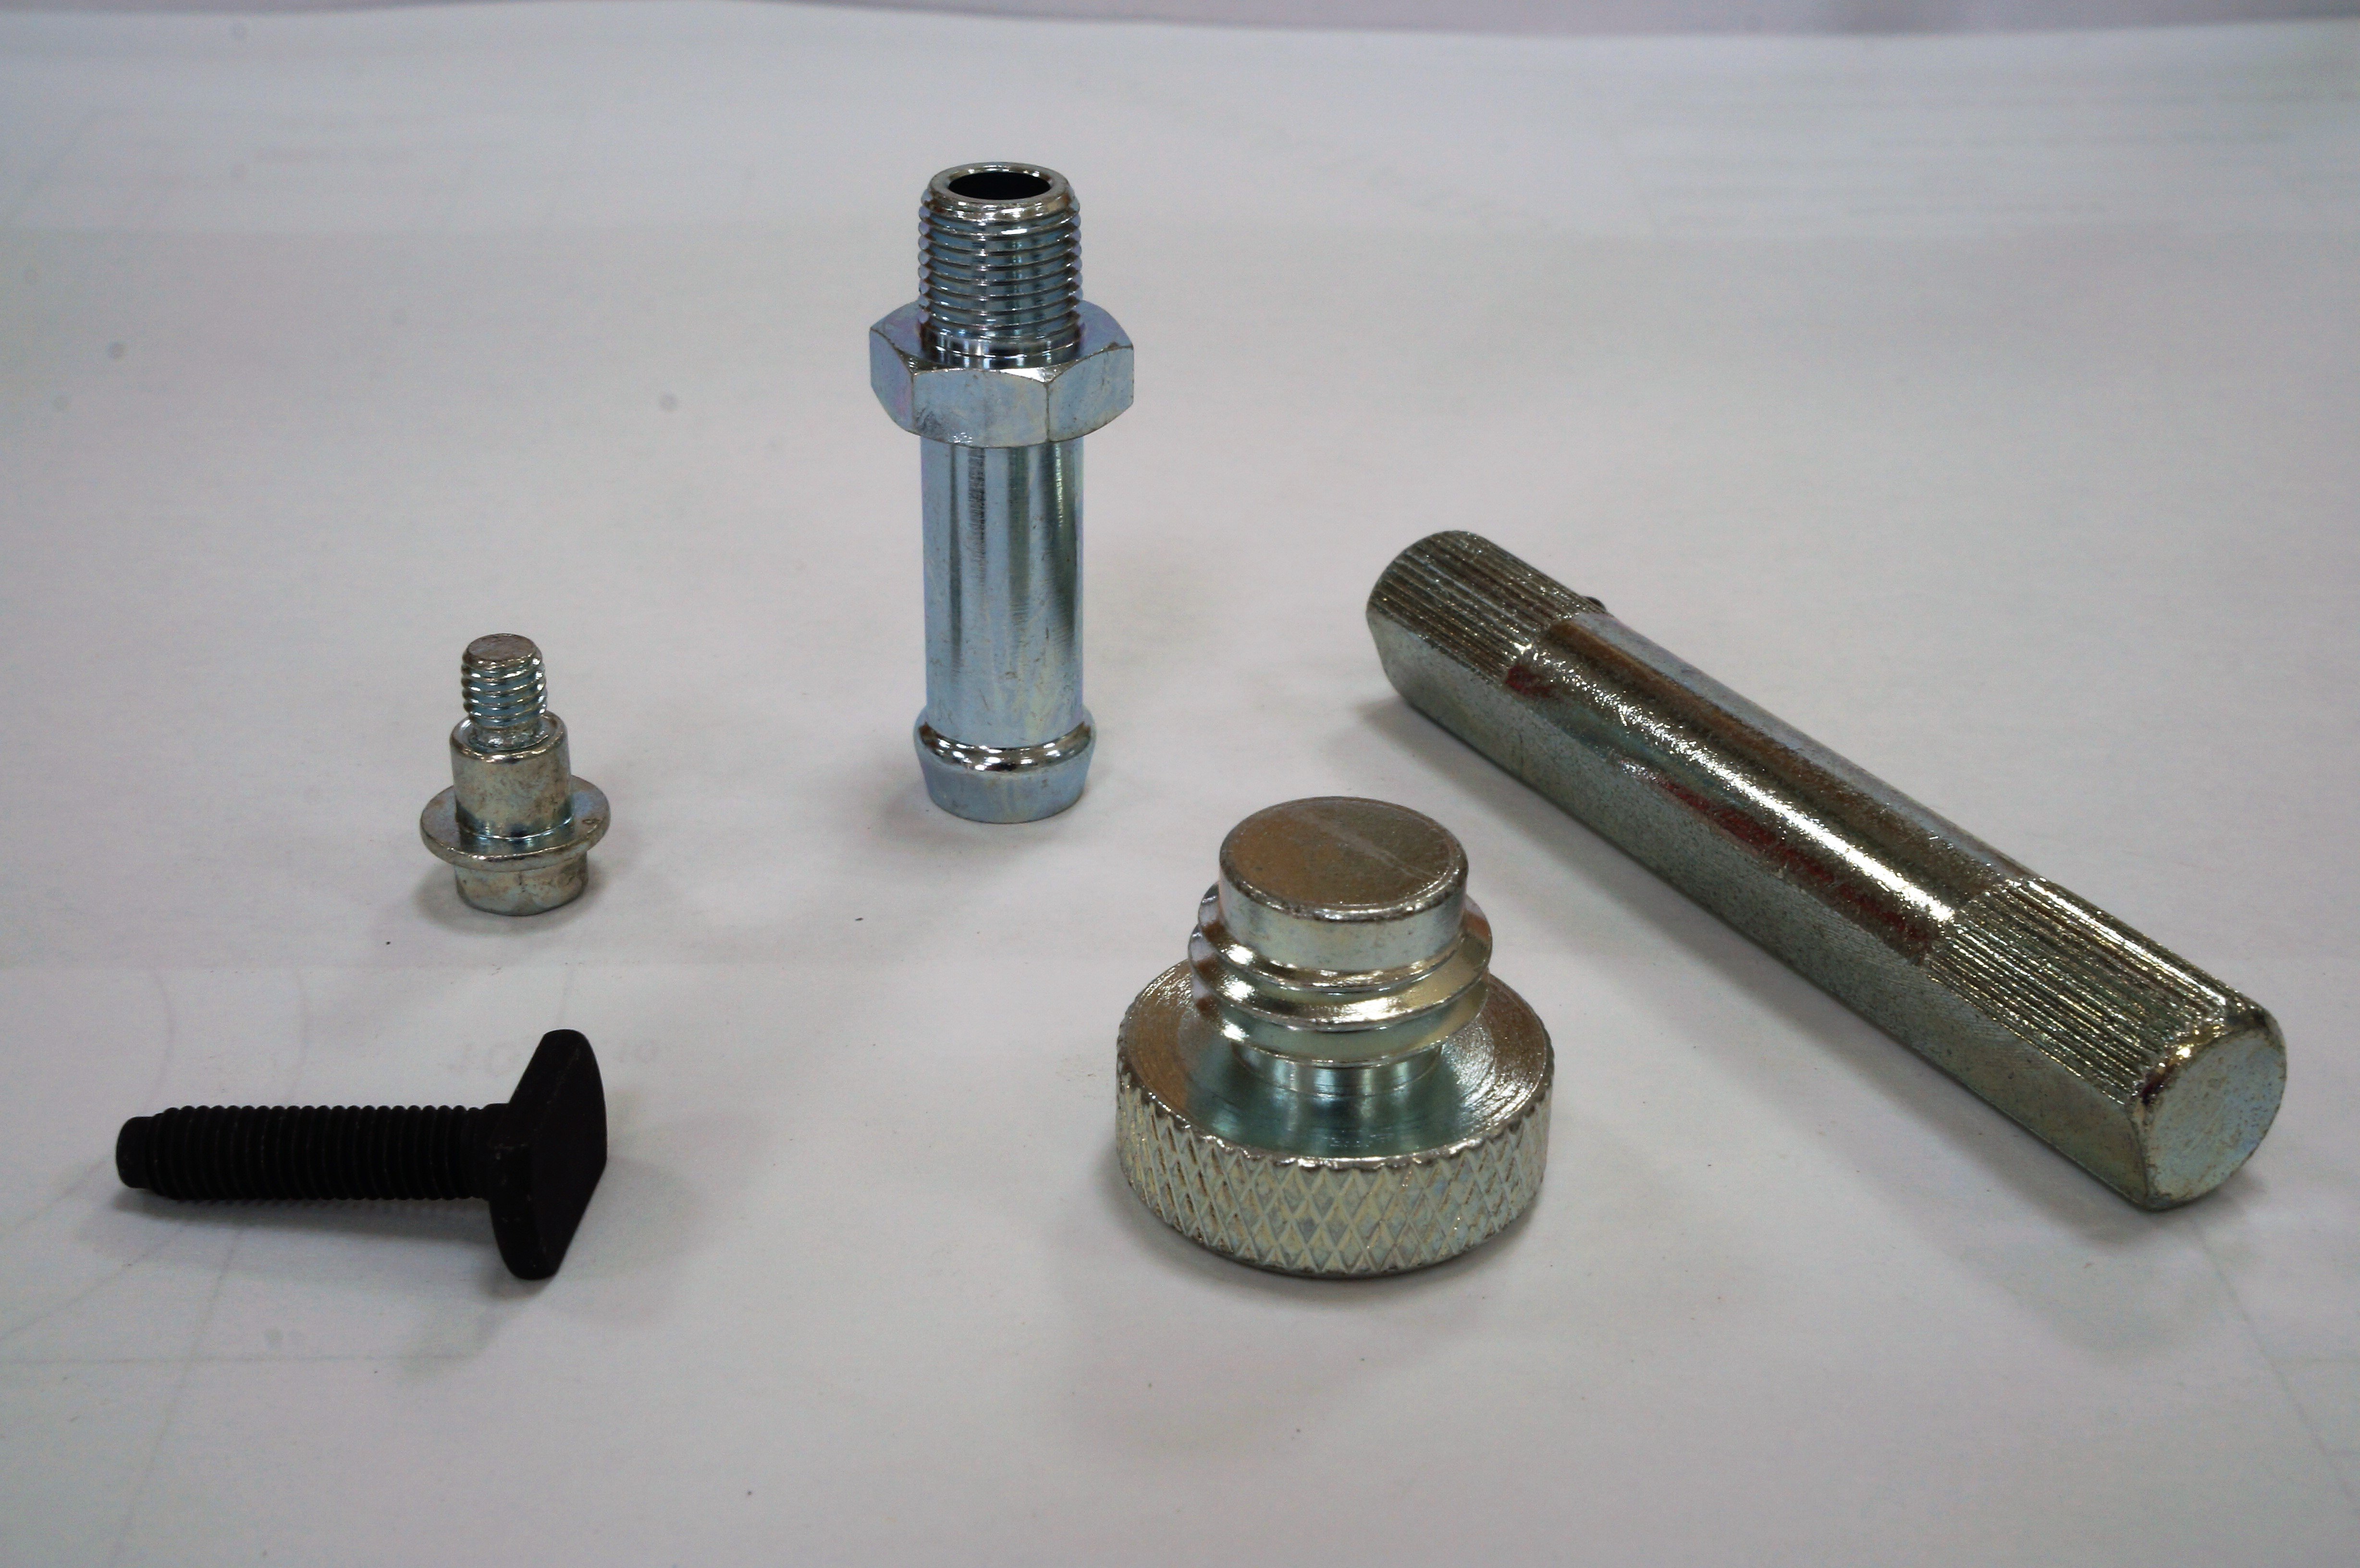 Agricultural / Tractor Bolts for Vehicle Fastener made by Sunny Screw Industry 三能螺栓工業股份有限公司 - MatchSupplier.com